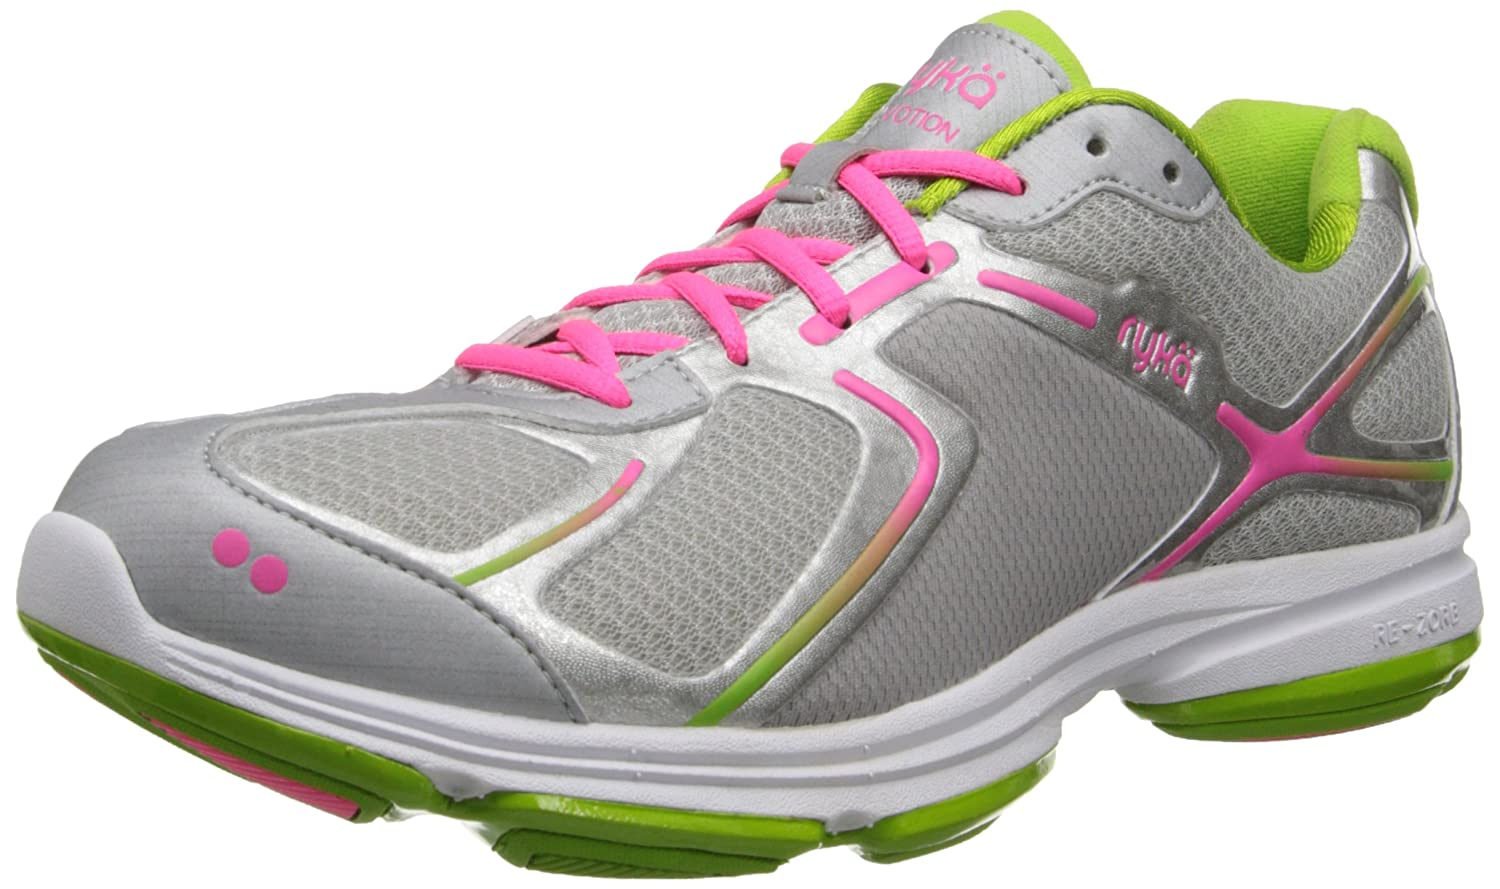 Ryka Women's Devotion Walking Shoe B00ISMJU76 5 B(M) US|Grey/Light Green /Dark Pink